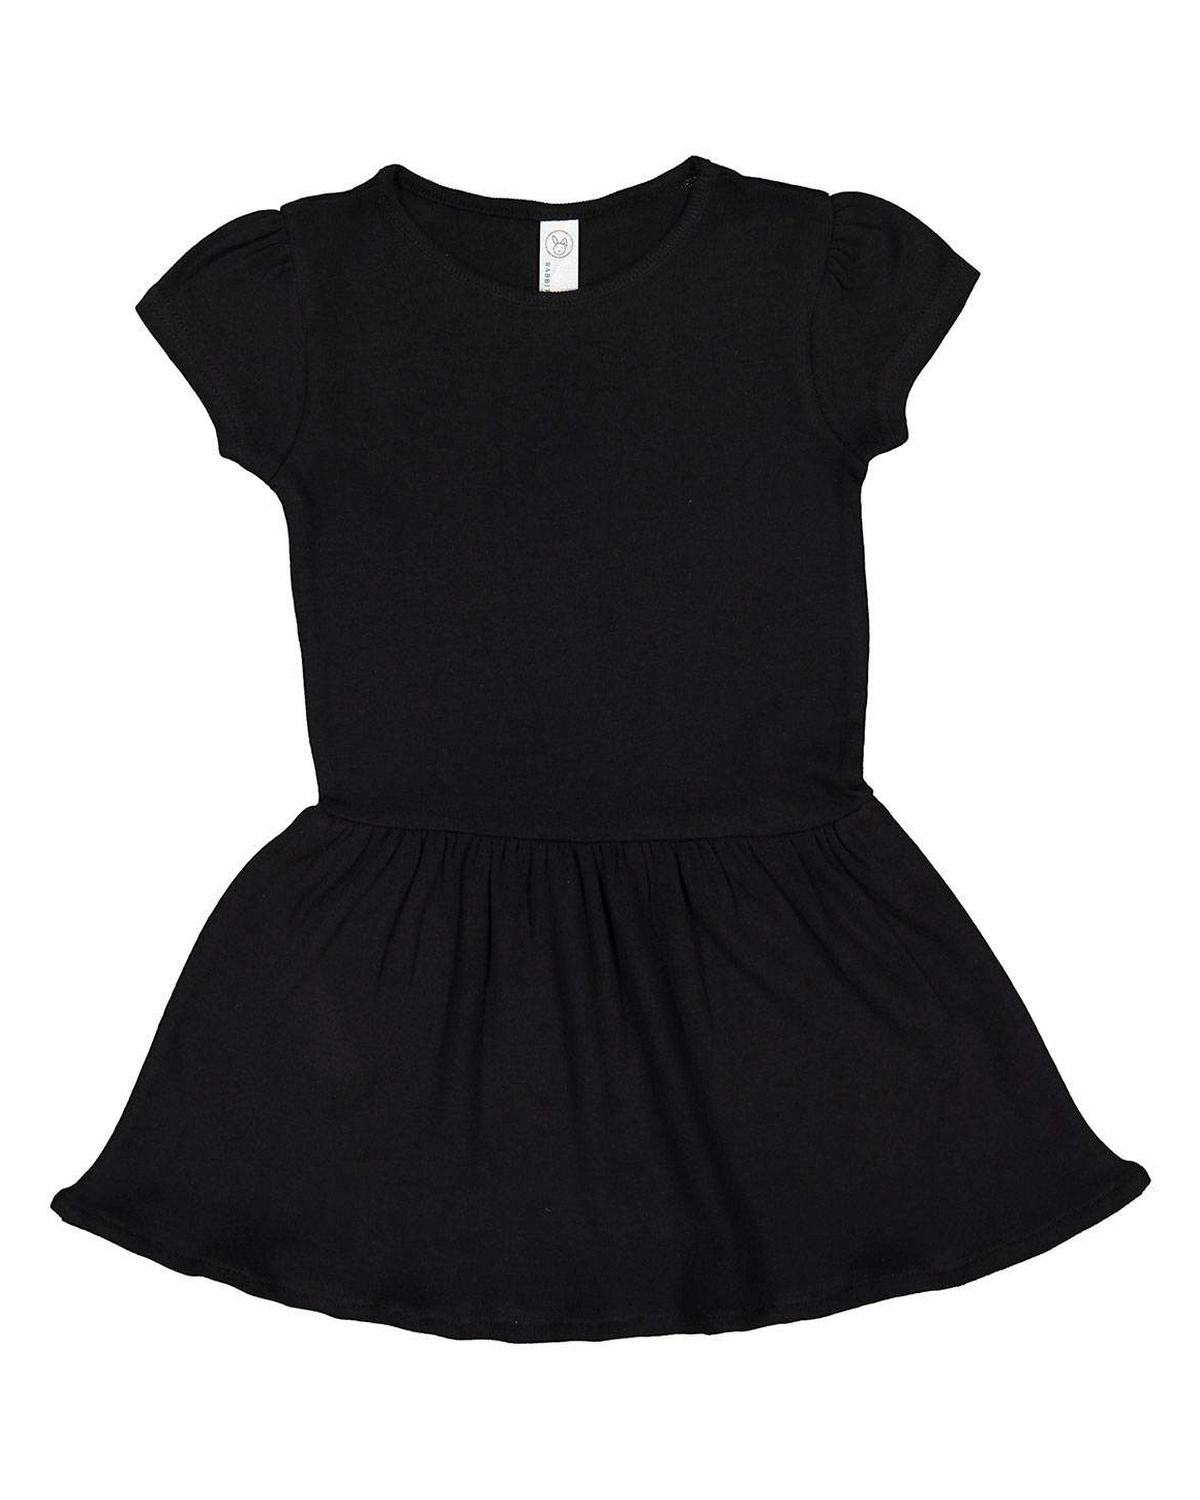 f74aad233 Rabbit Skins 5323 Toddler Baby Rib Dress - Free Shipping Available